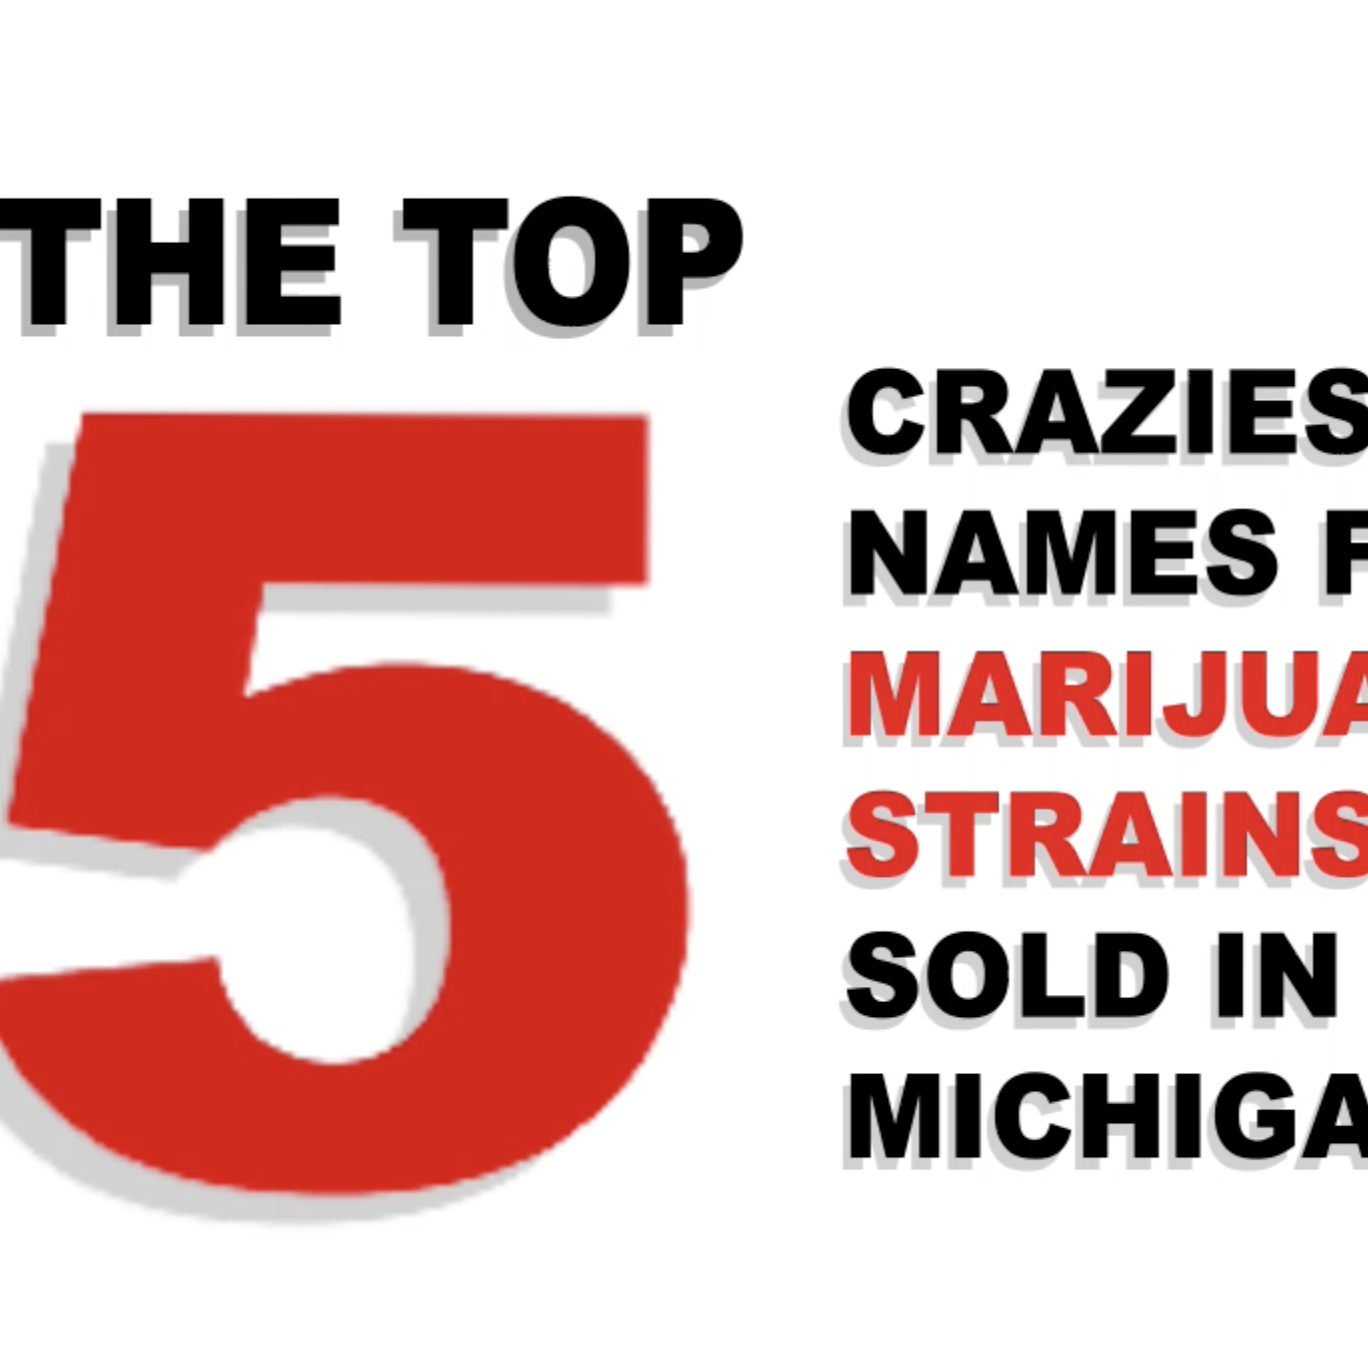 Marijuana strains in Michigan have bizarre names | Thompson